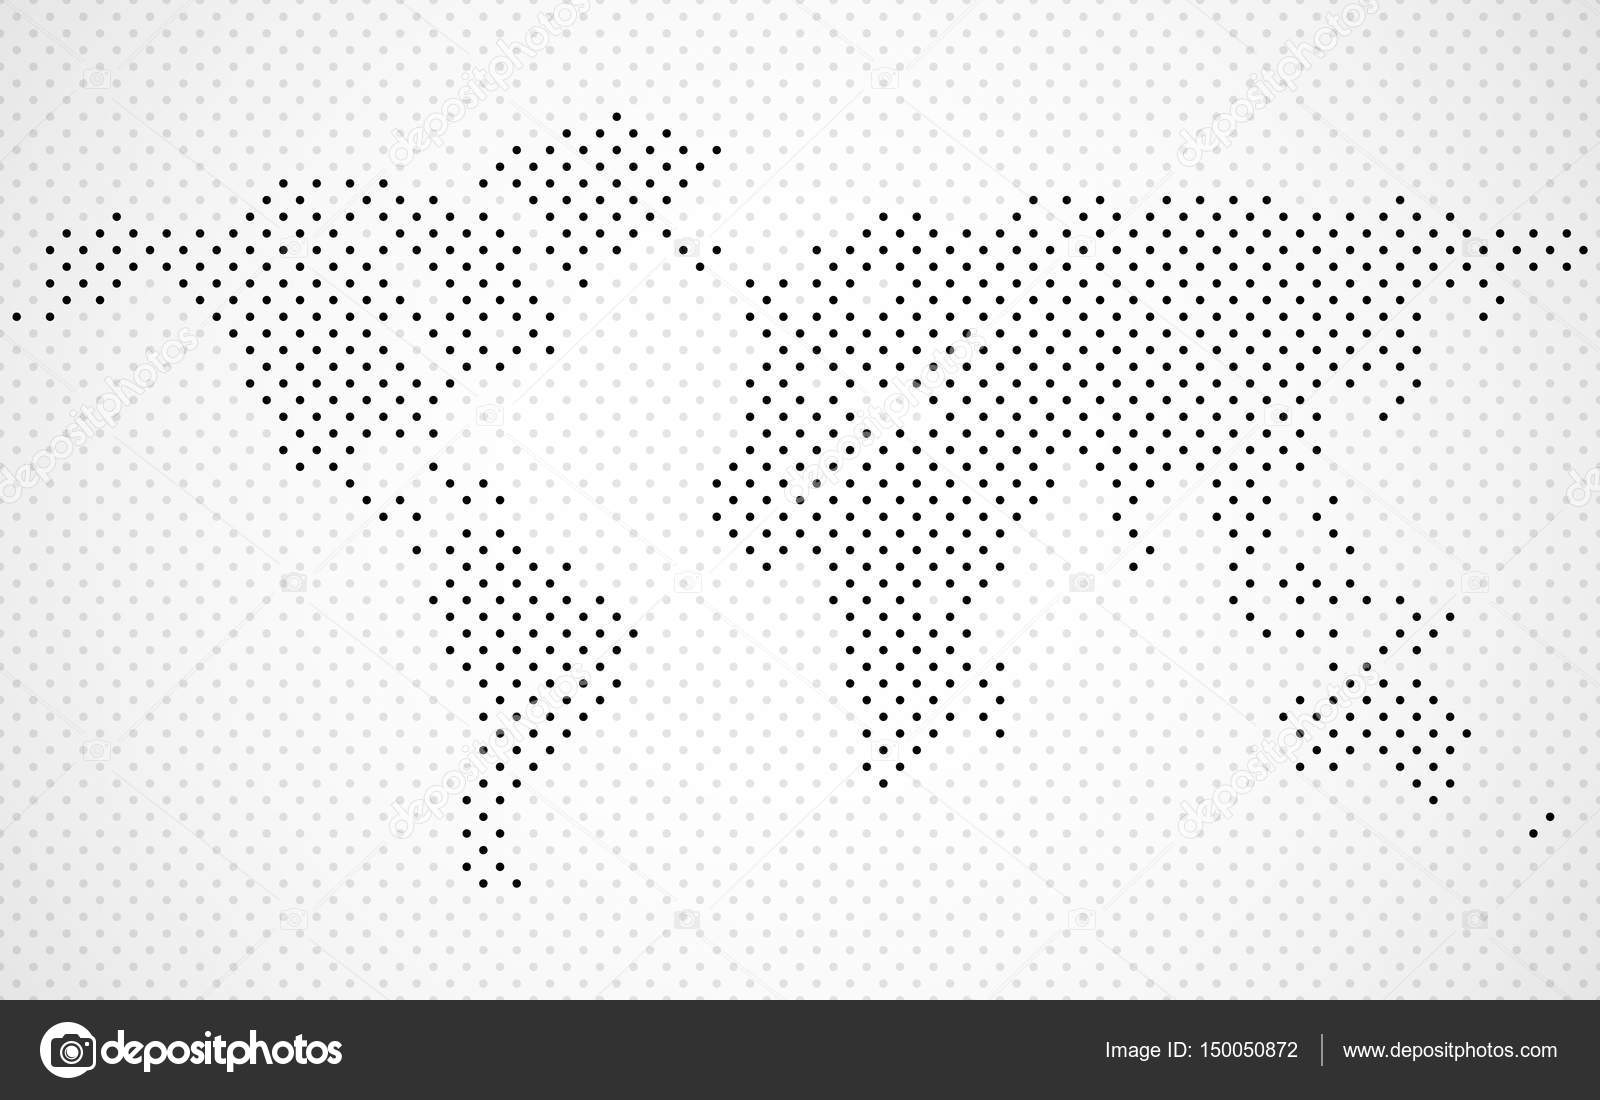 Abstract world map of dots dotted map vector stock vector abstract world map of dots dotted map vector stock vector gumiabroncs Gallery